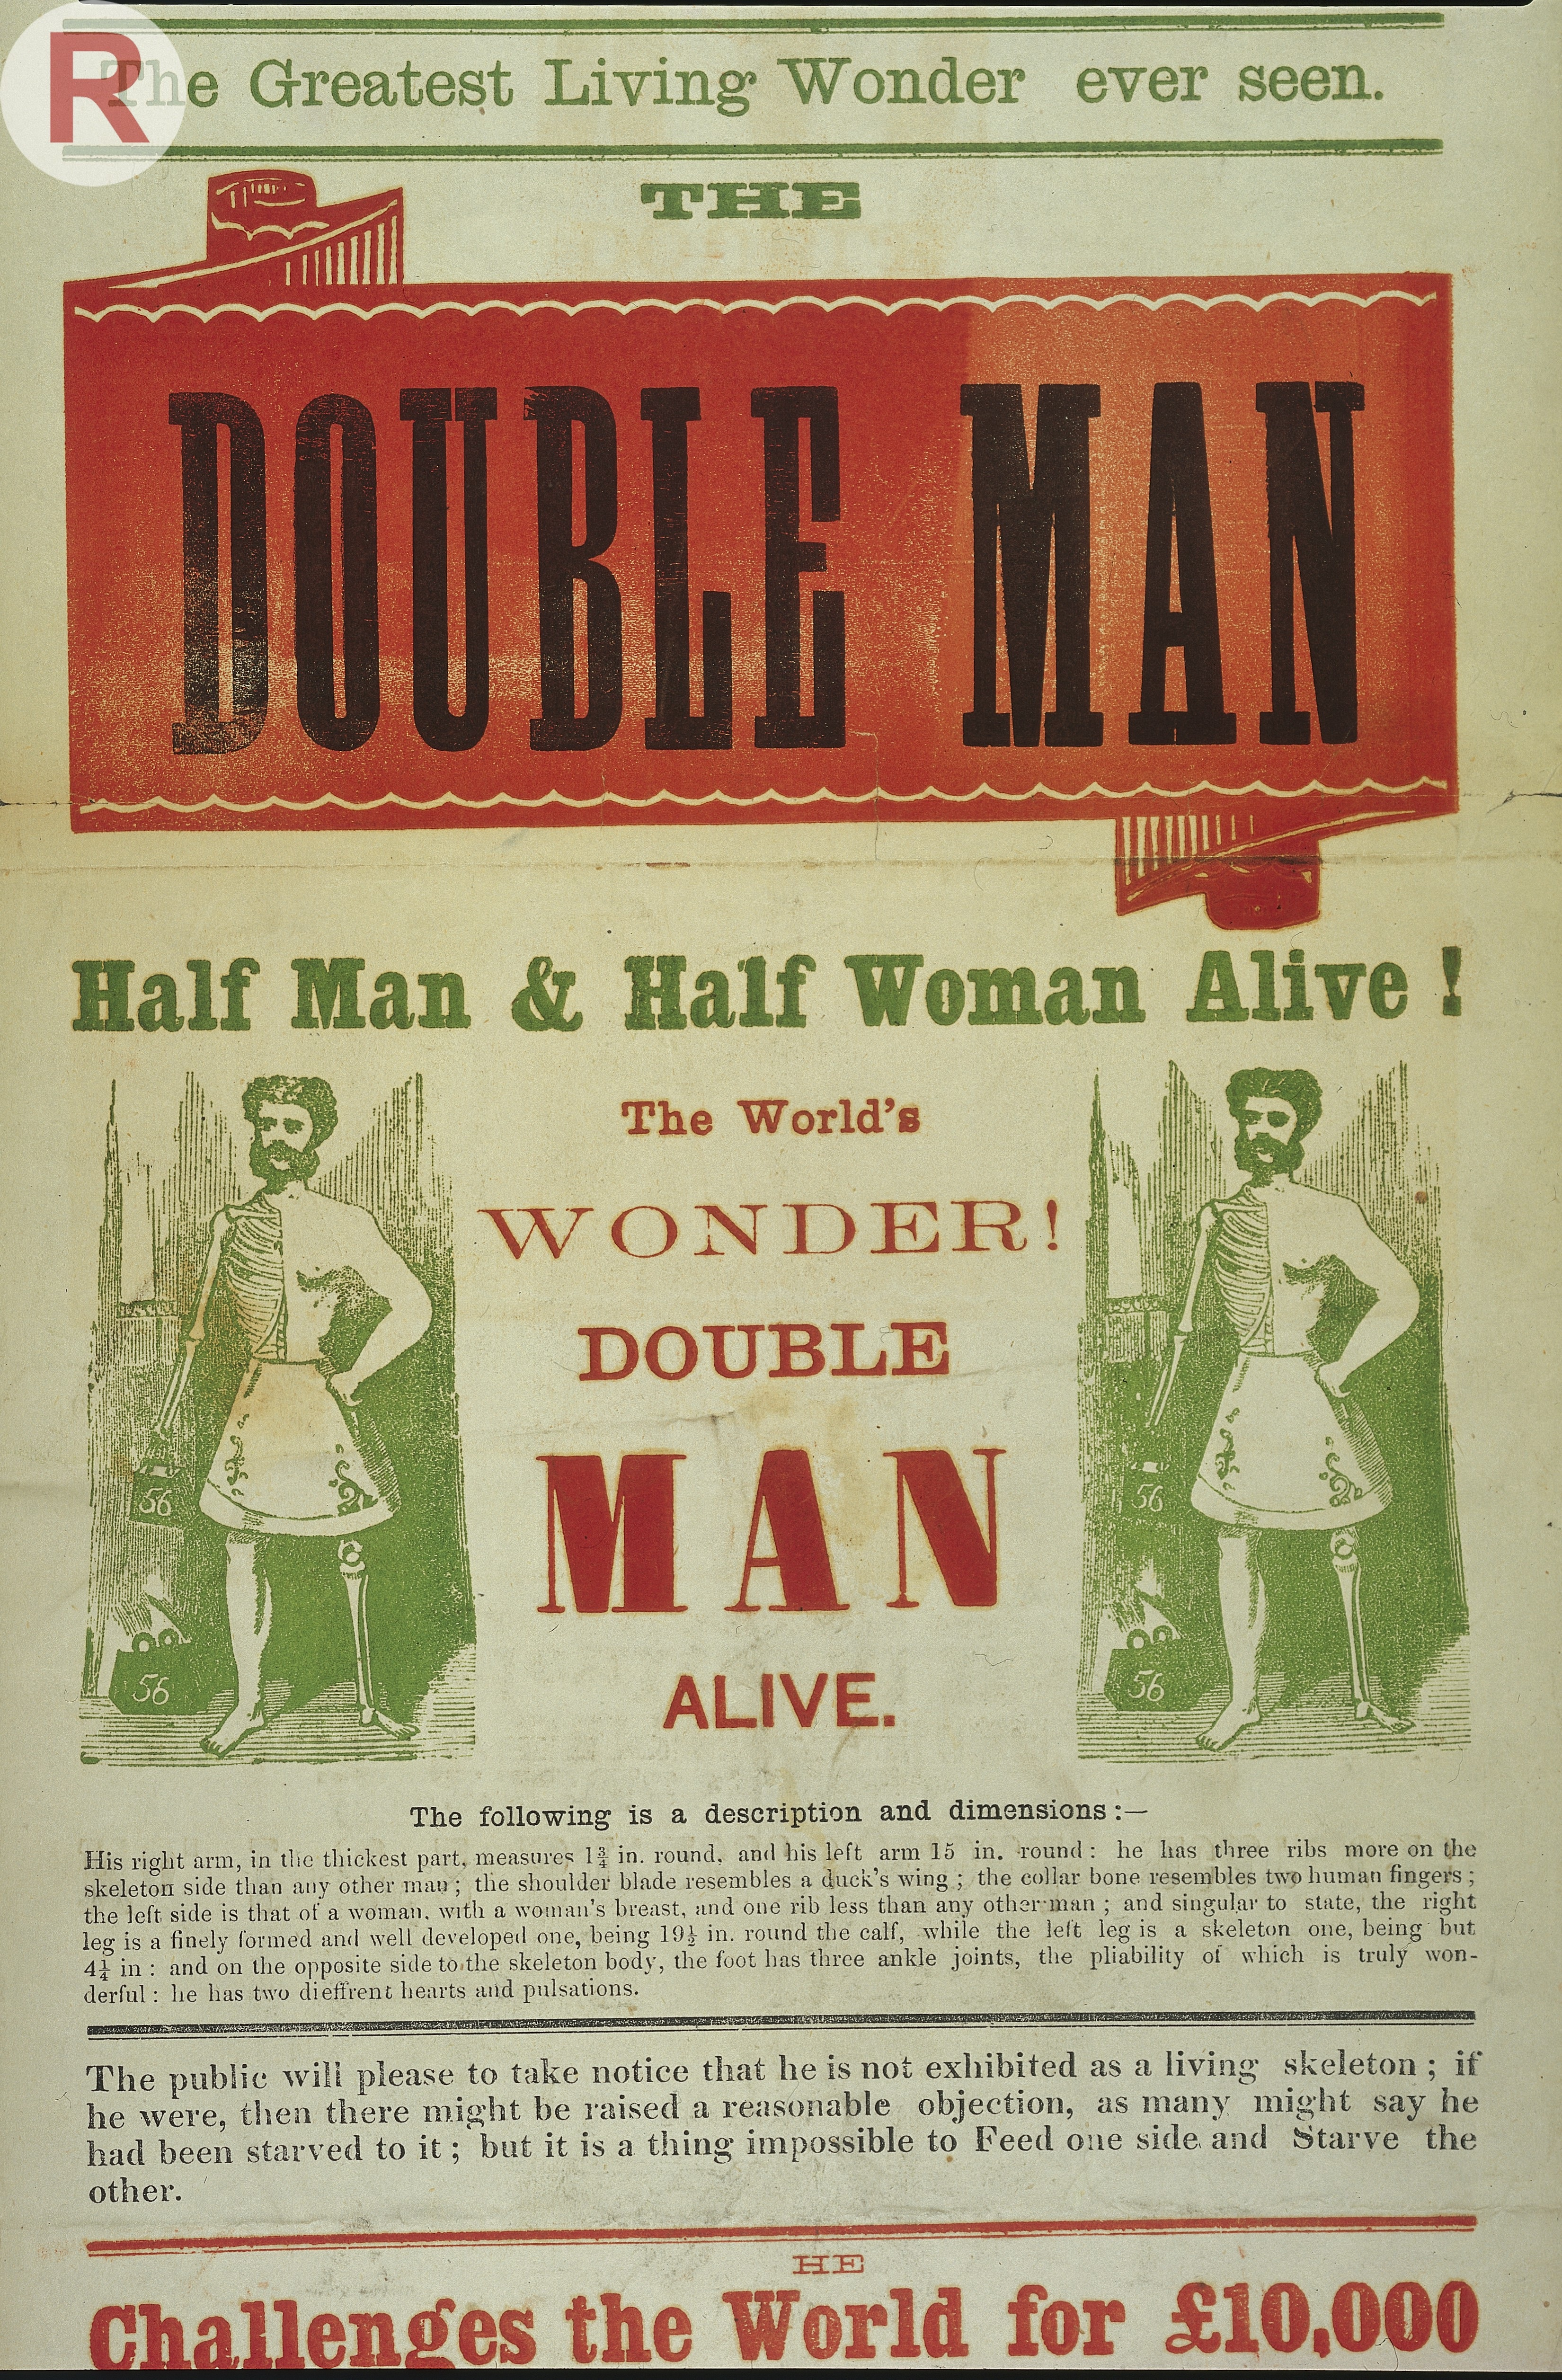 """Poster of Barry's exhibition of Living Wonders, """"The Double Man,"""" ca. 1871."""